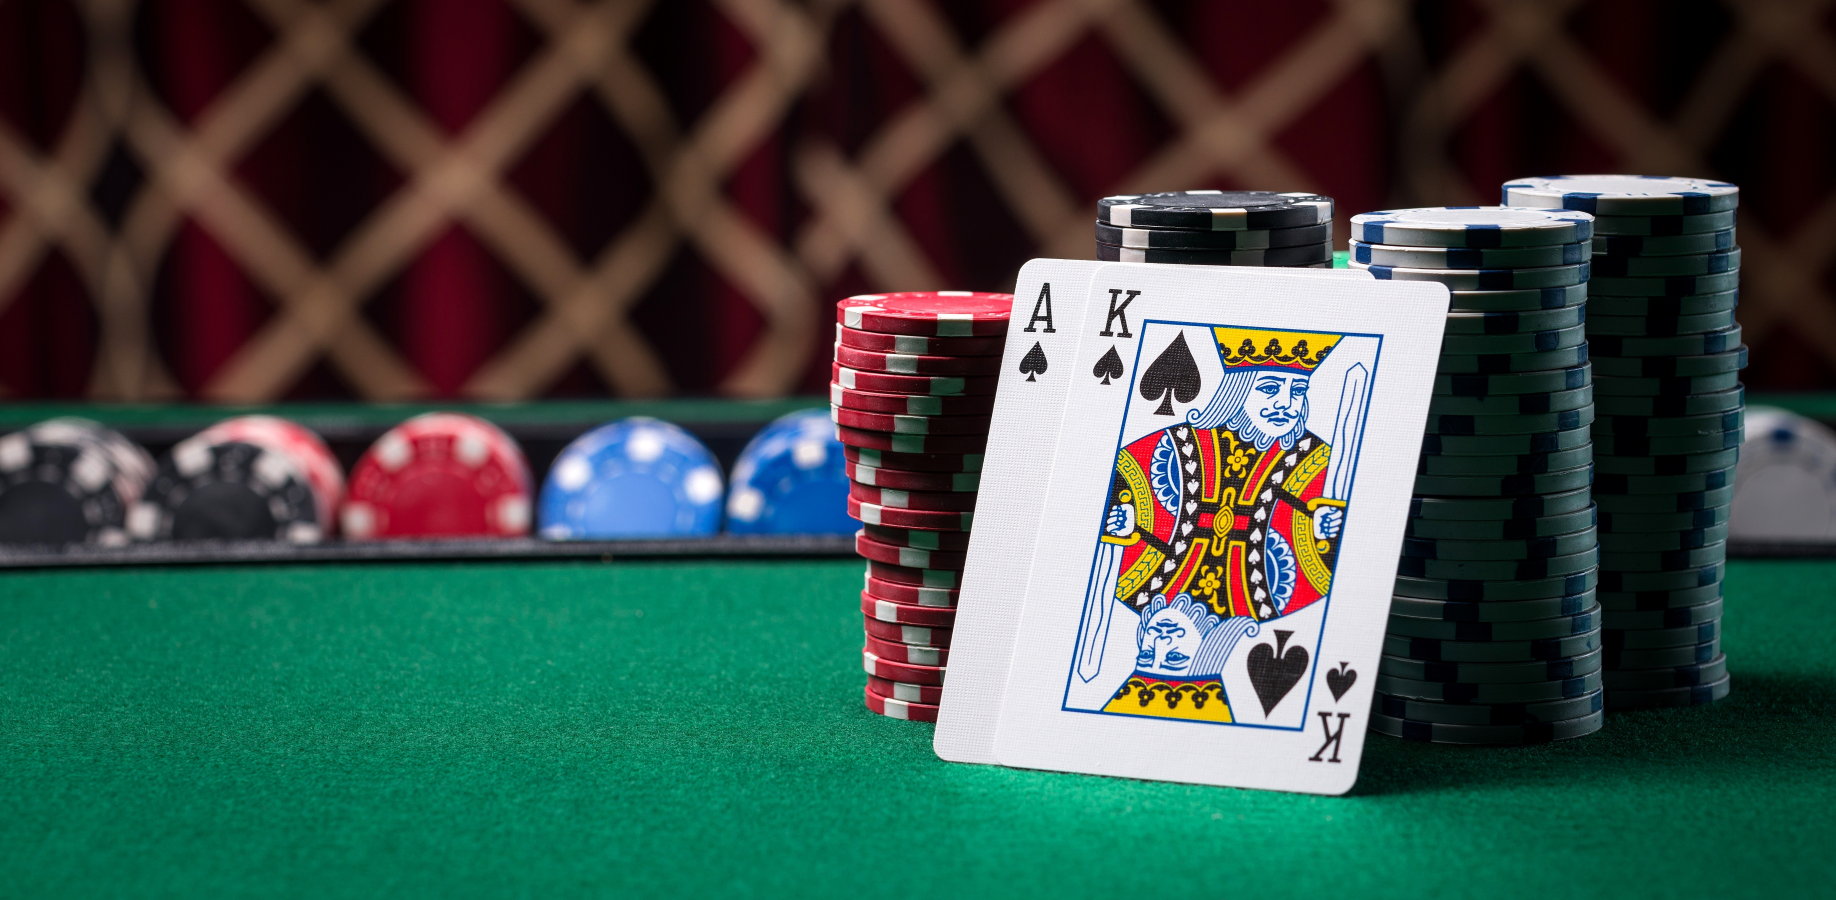 Learn How To Play Texas Holdem Poker Learn Texas Holdem Rule Hands